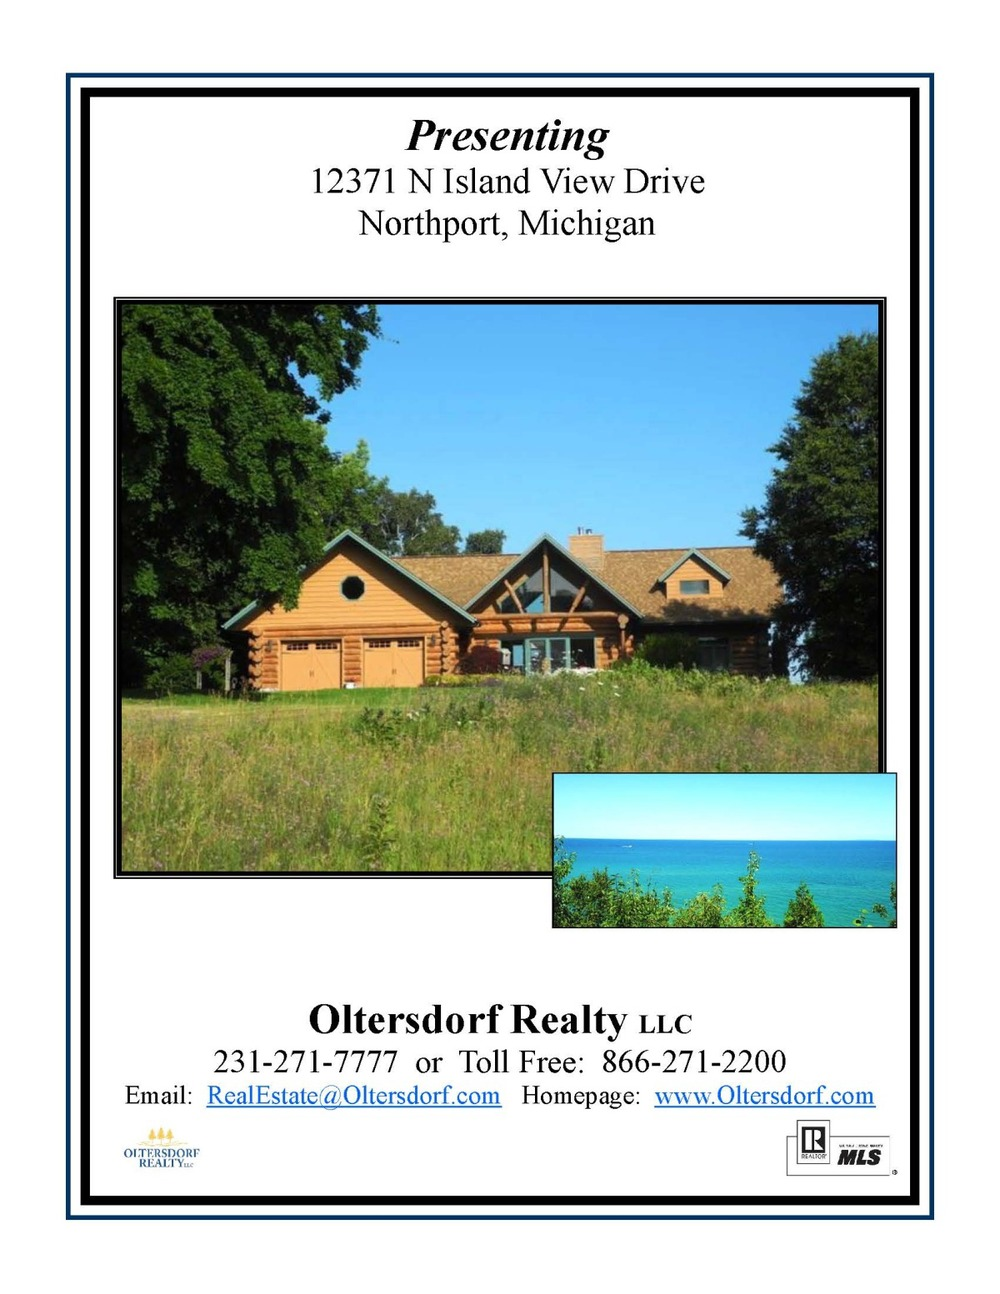 12371 n island view drive, northport, leelanau county with lake michigan water views for sale by oltersdorf realty llct_page_01.jpg